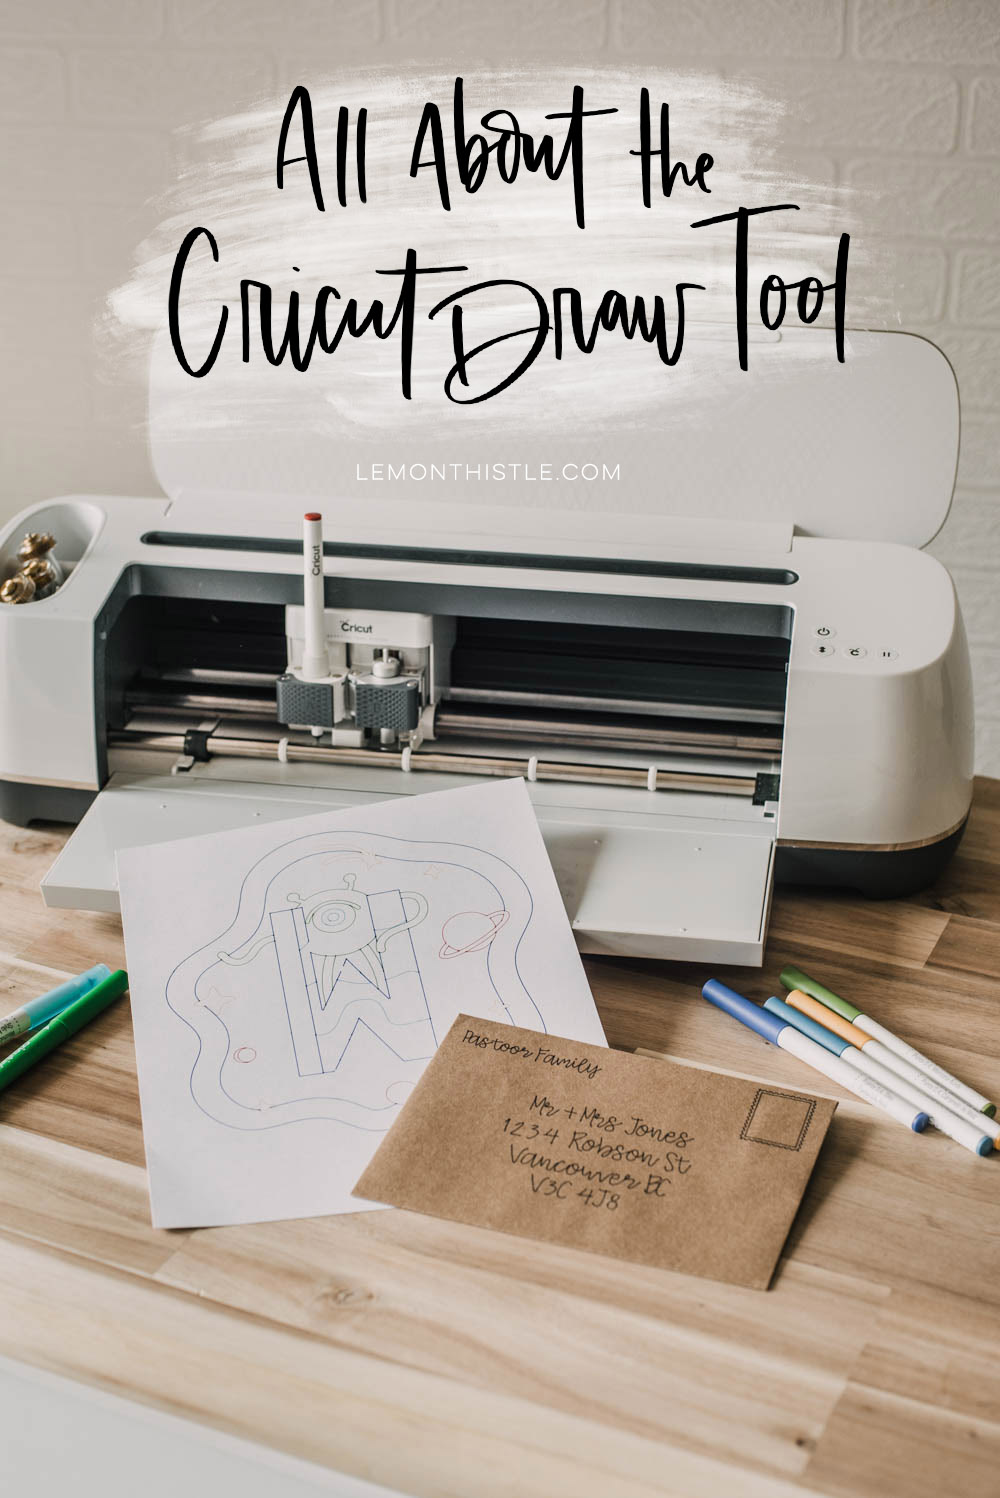 Title image How to use the Cricut Draw Tool